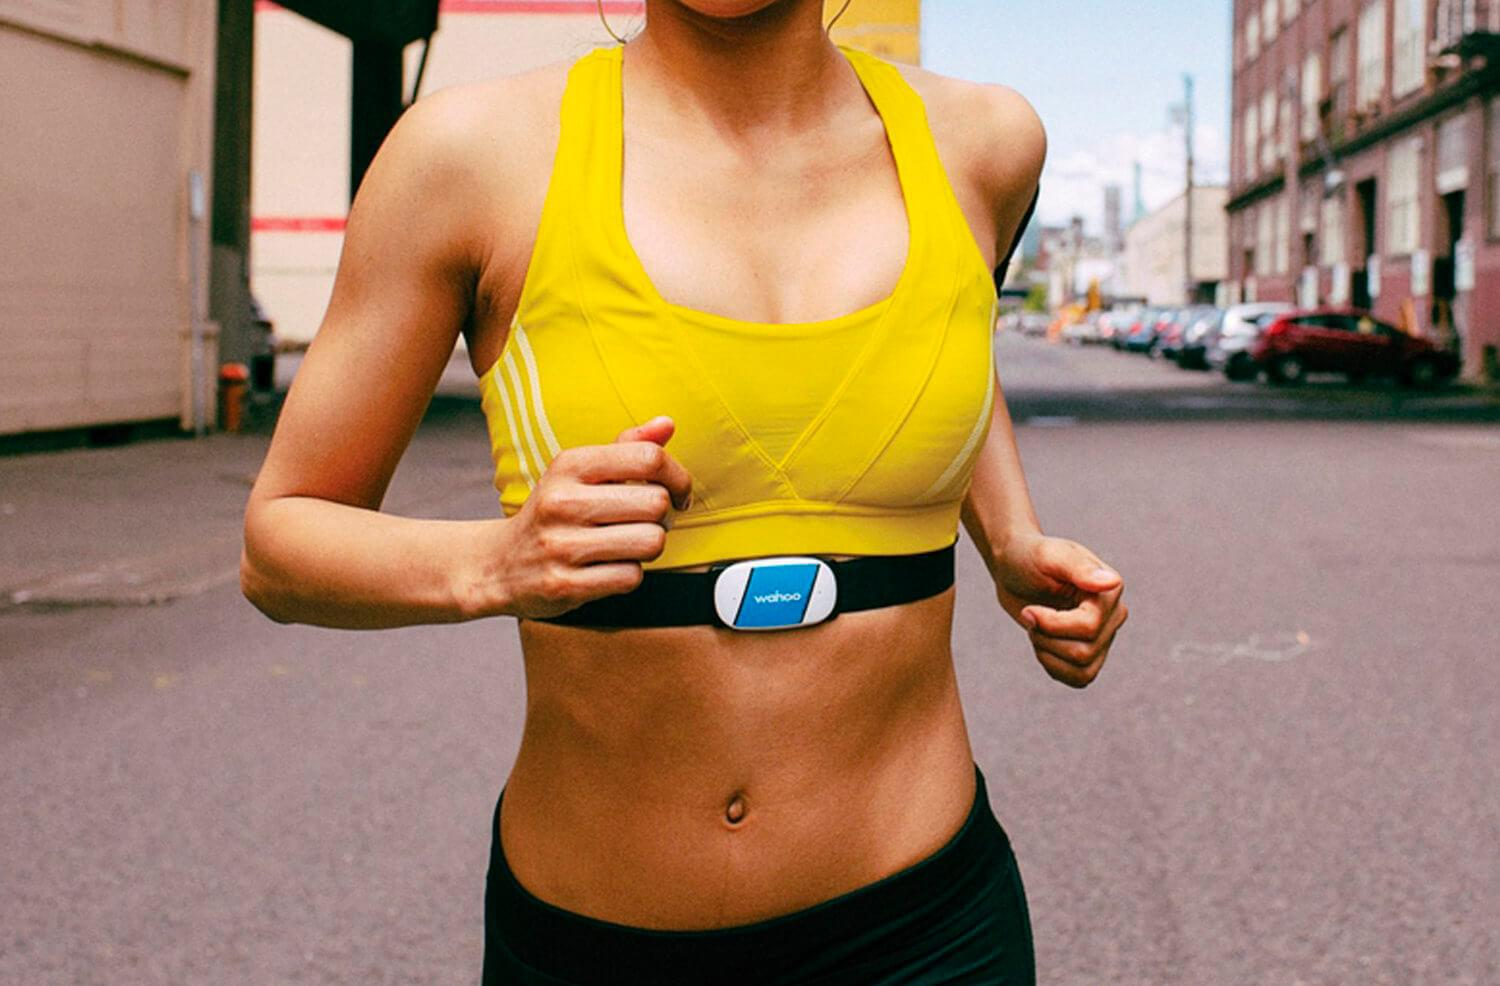 The Best Running Heart Rate Monitor Reviewed